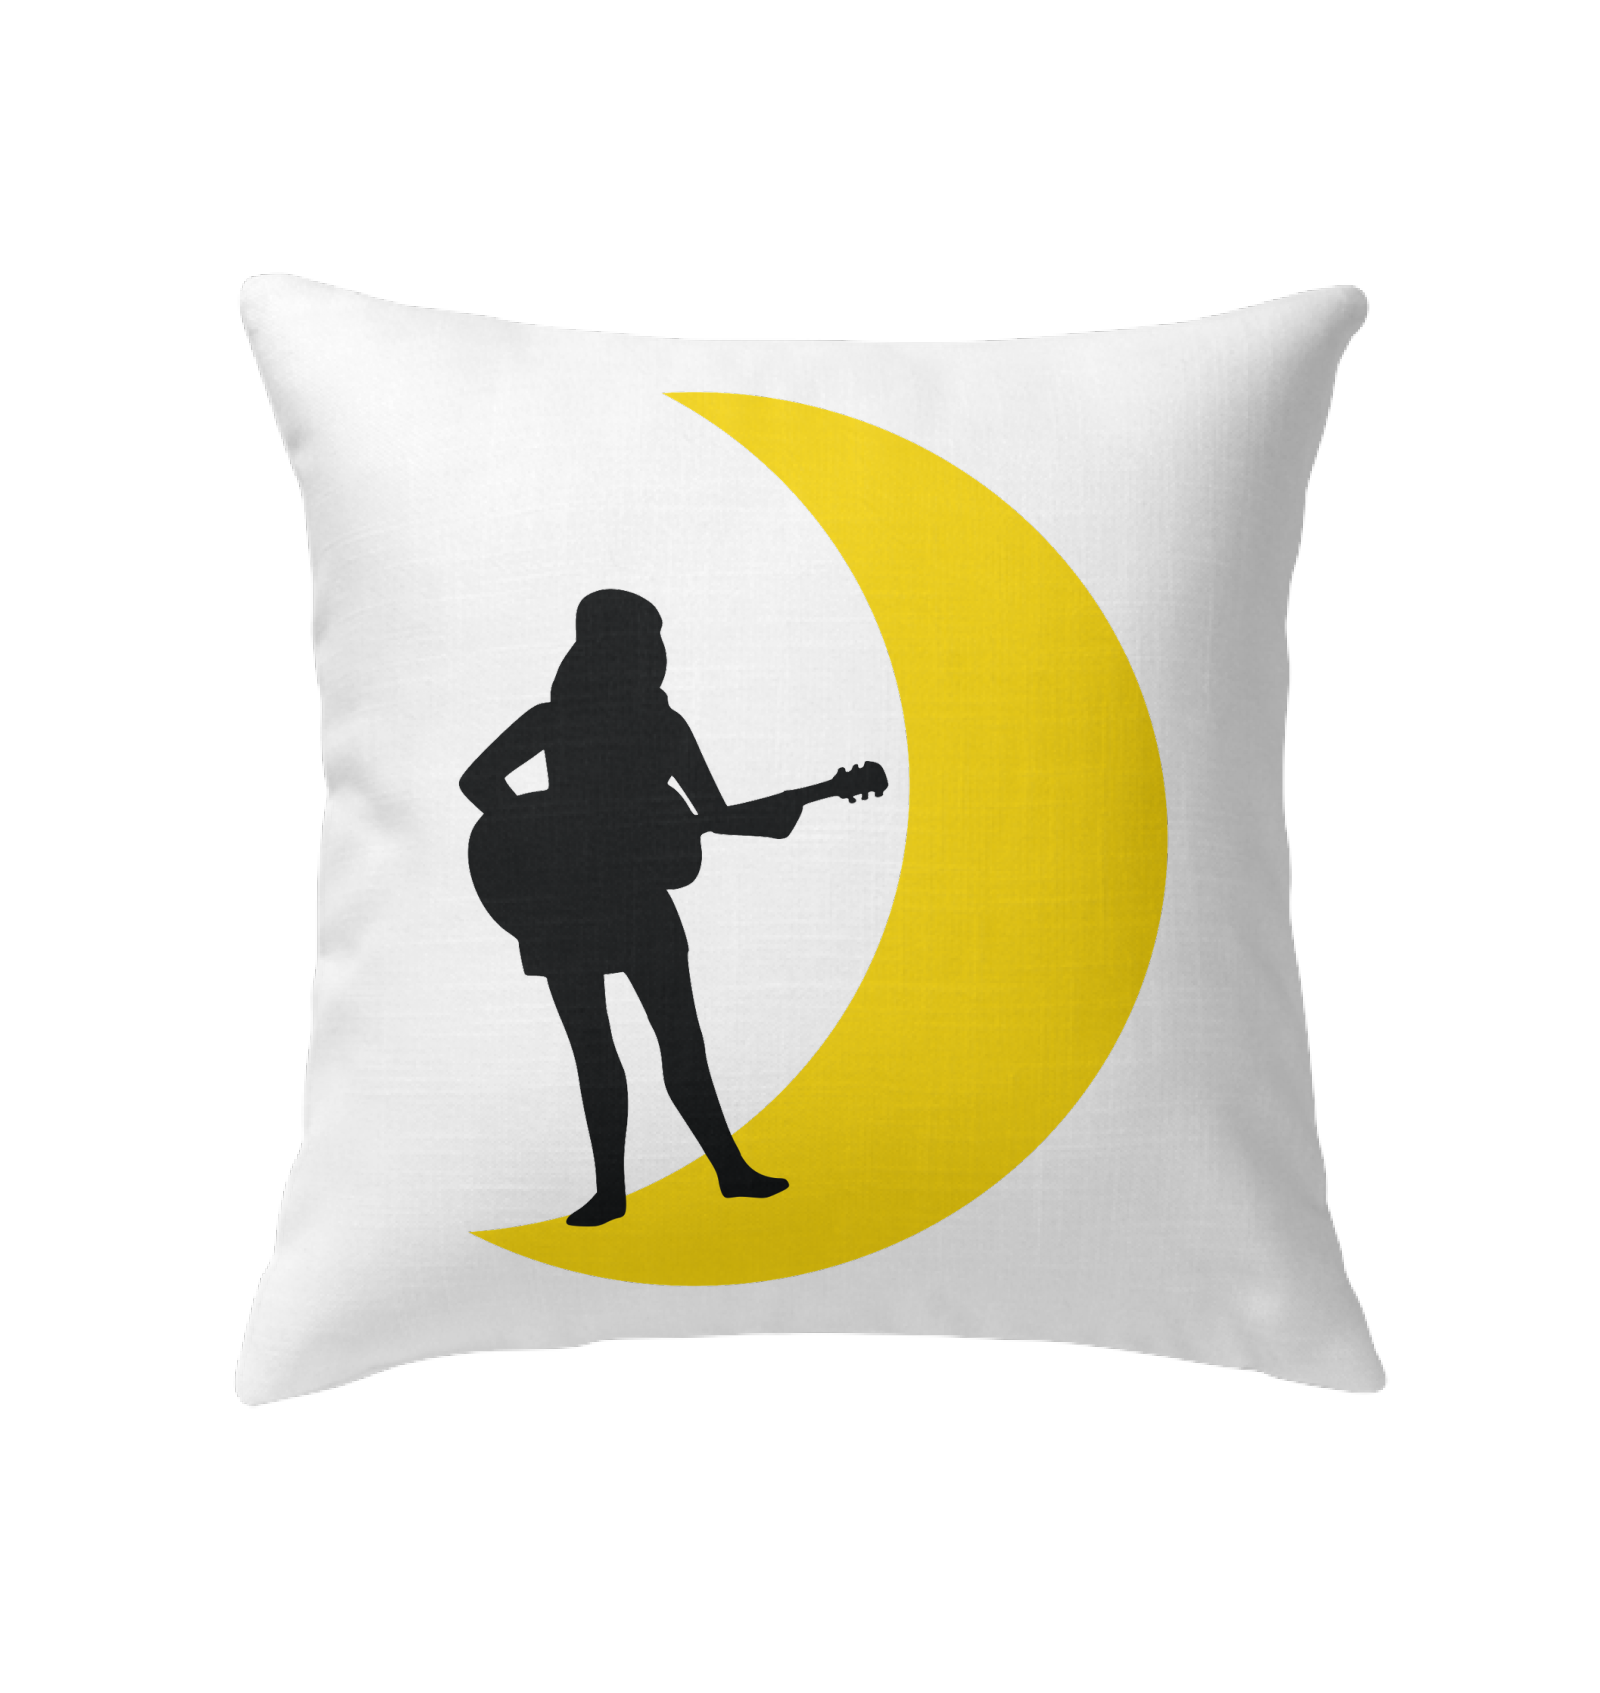 Moonlight Guitar Player - Indoor Pillow